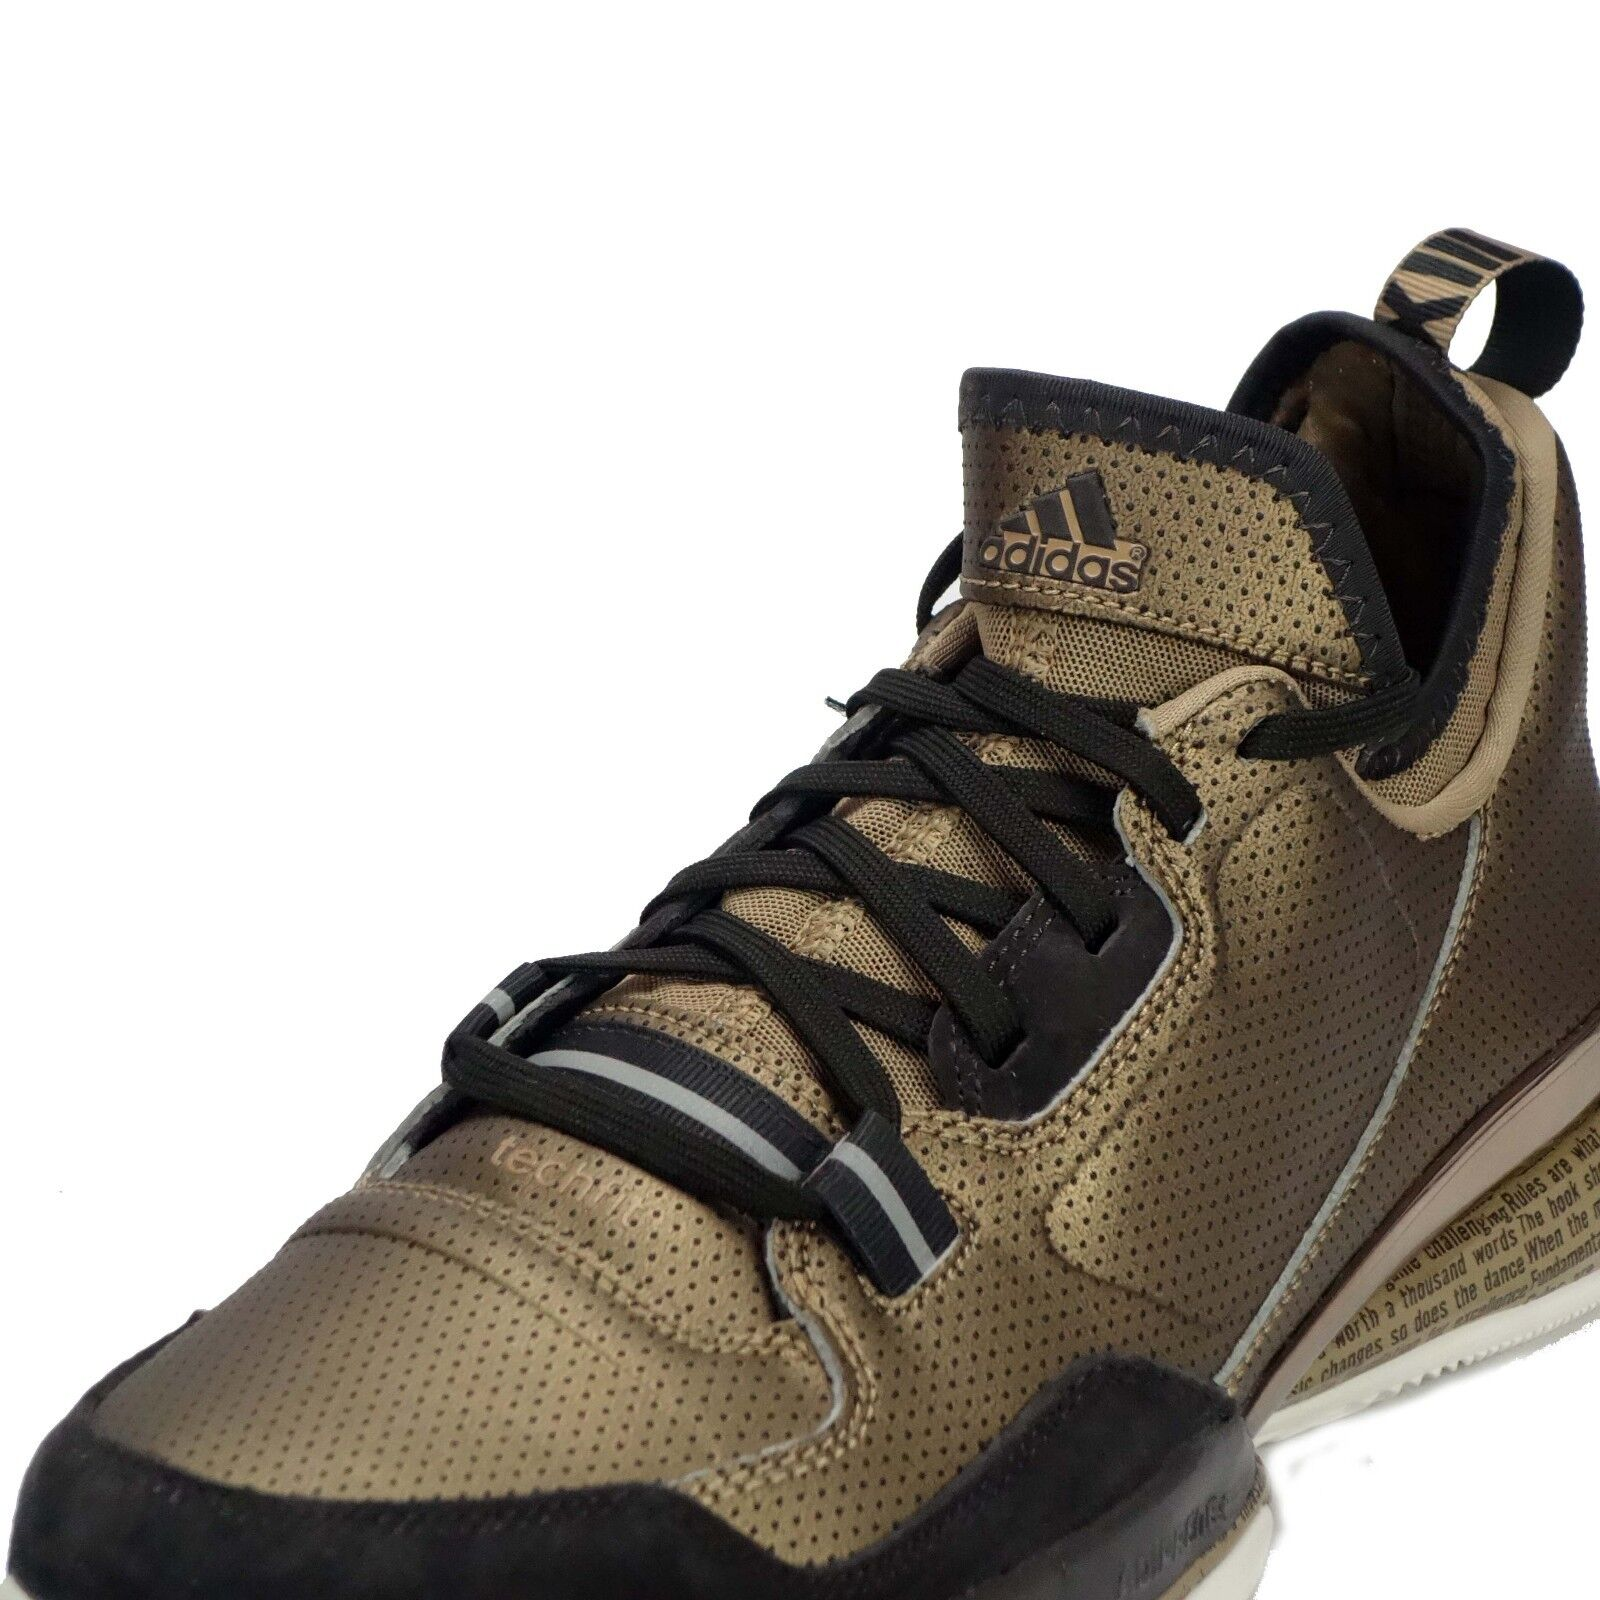 online store b7a42 b133b ... get adidas d lillard bhm bhm bhm mens basketball trainers shoes in brown  f4a439 e05ab 30d3d